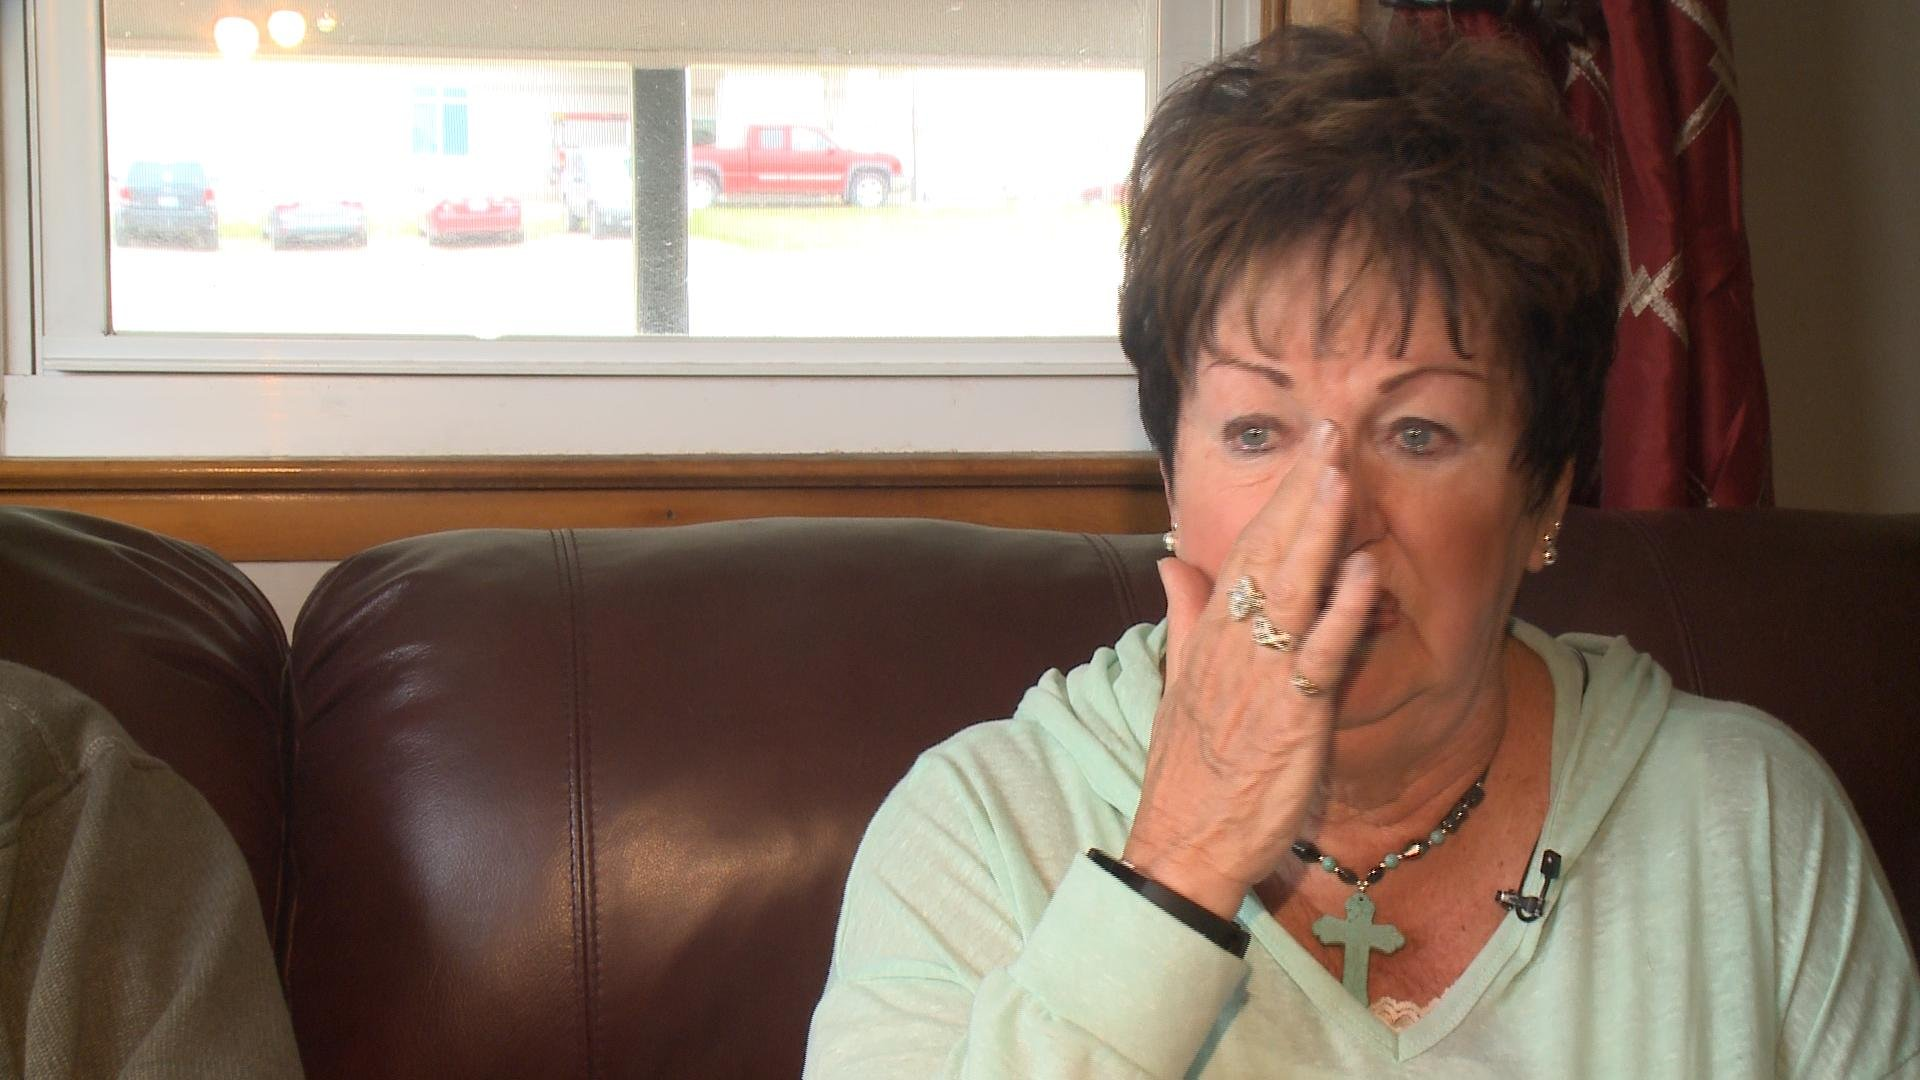 Pauline Lorenz wipes a tear from her eye as she talks about losing her son Rick in a boating accident in July 2016.